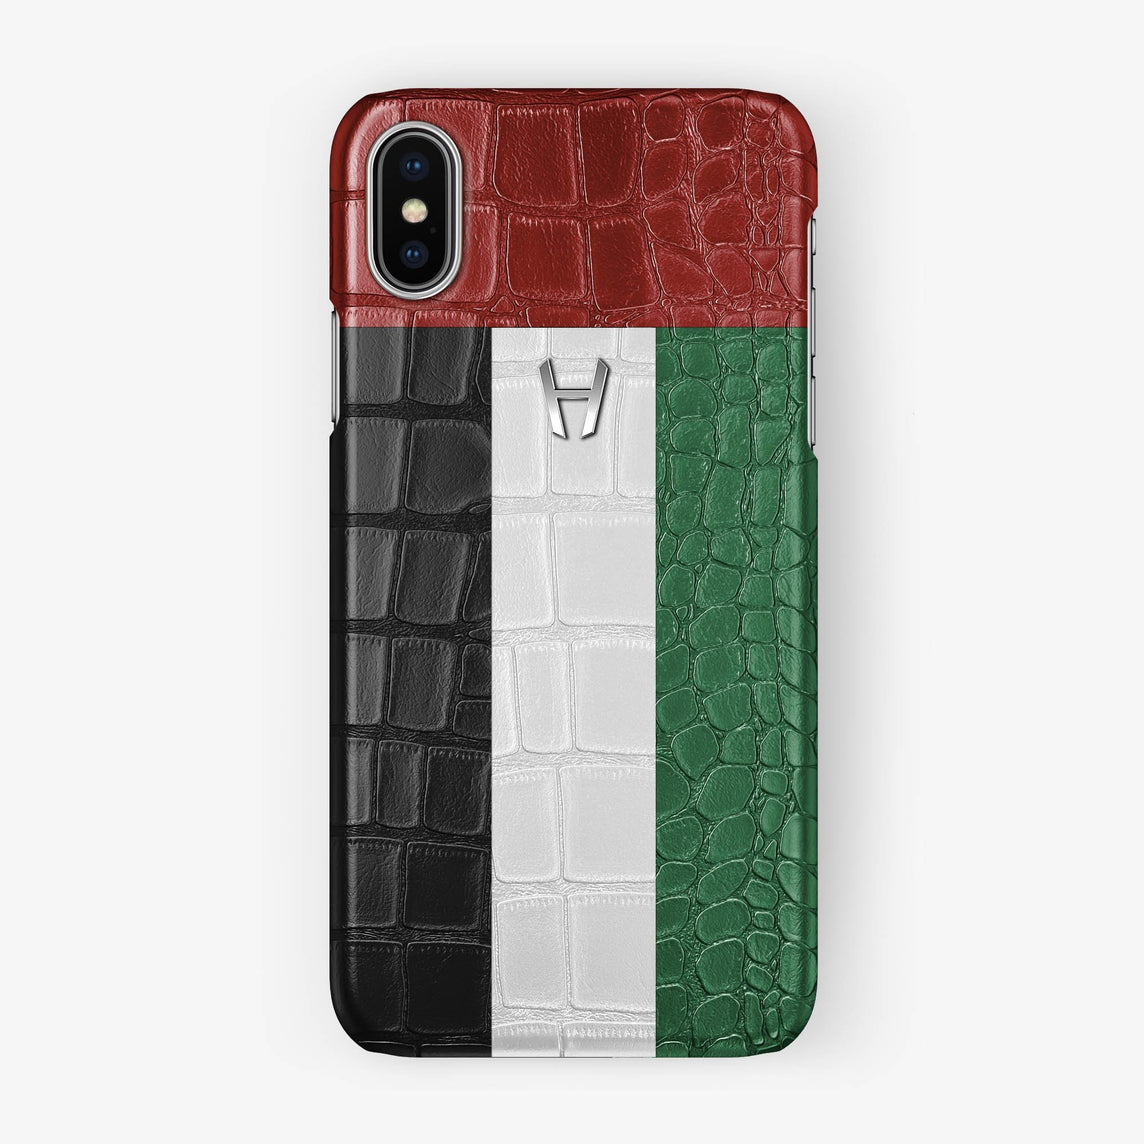 Alligator Case Flag of UAE iPhone X/Xs | Stainless Steel - Hadoro